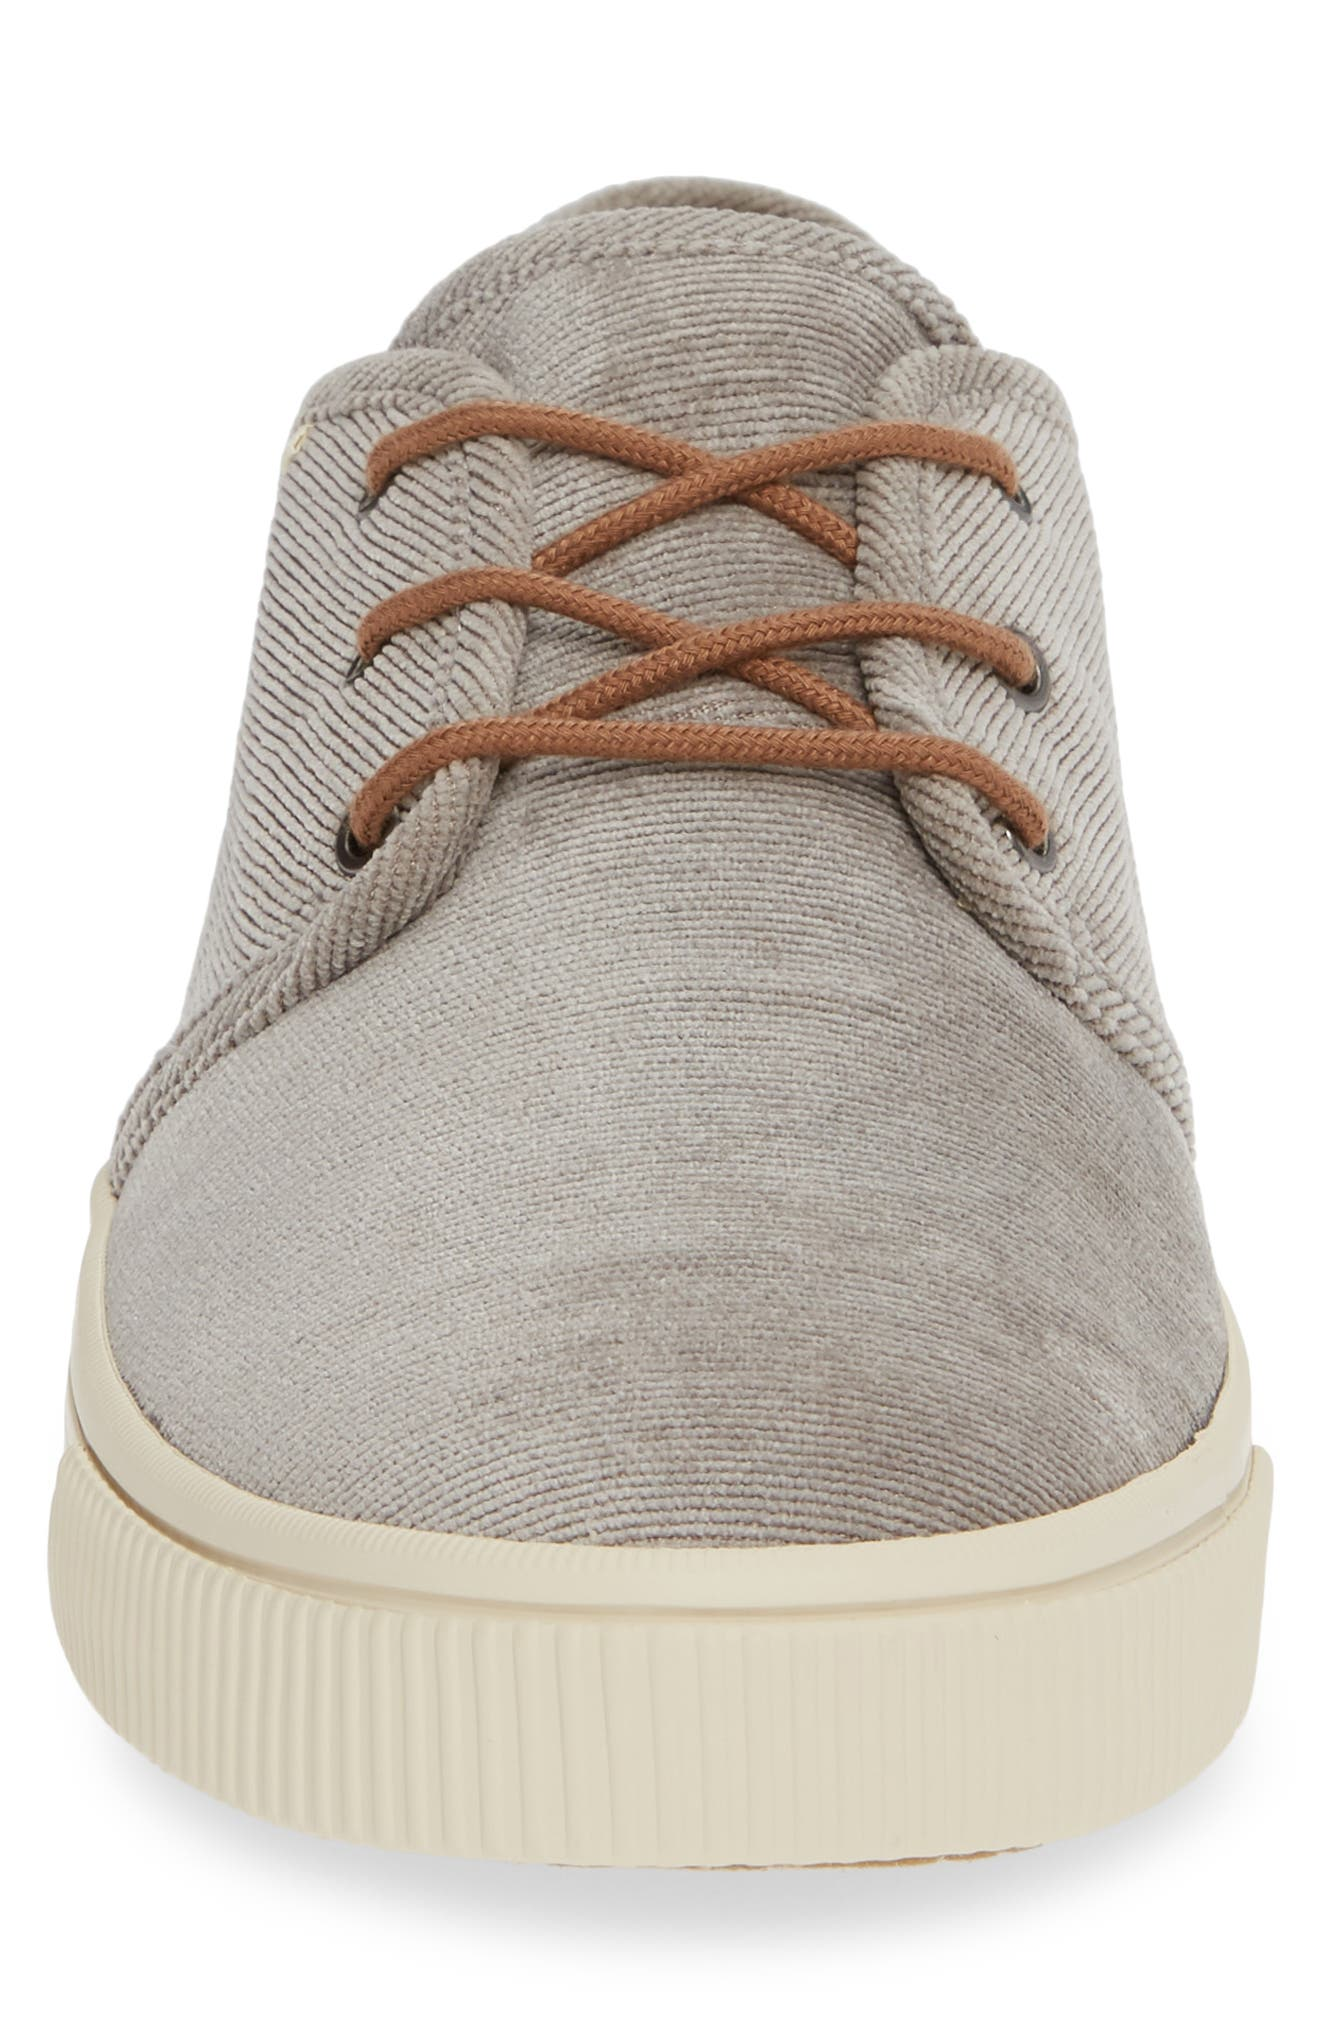 TOMS,                             Carlo Sneaker,                             Alternate thumbnail 4, color,                             020